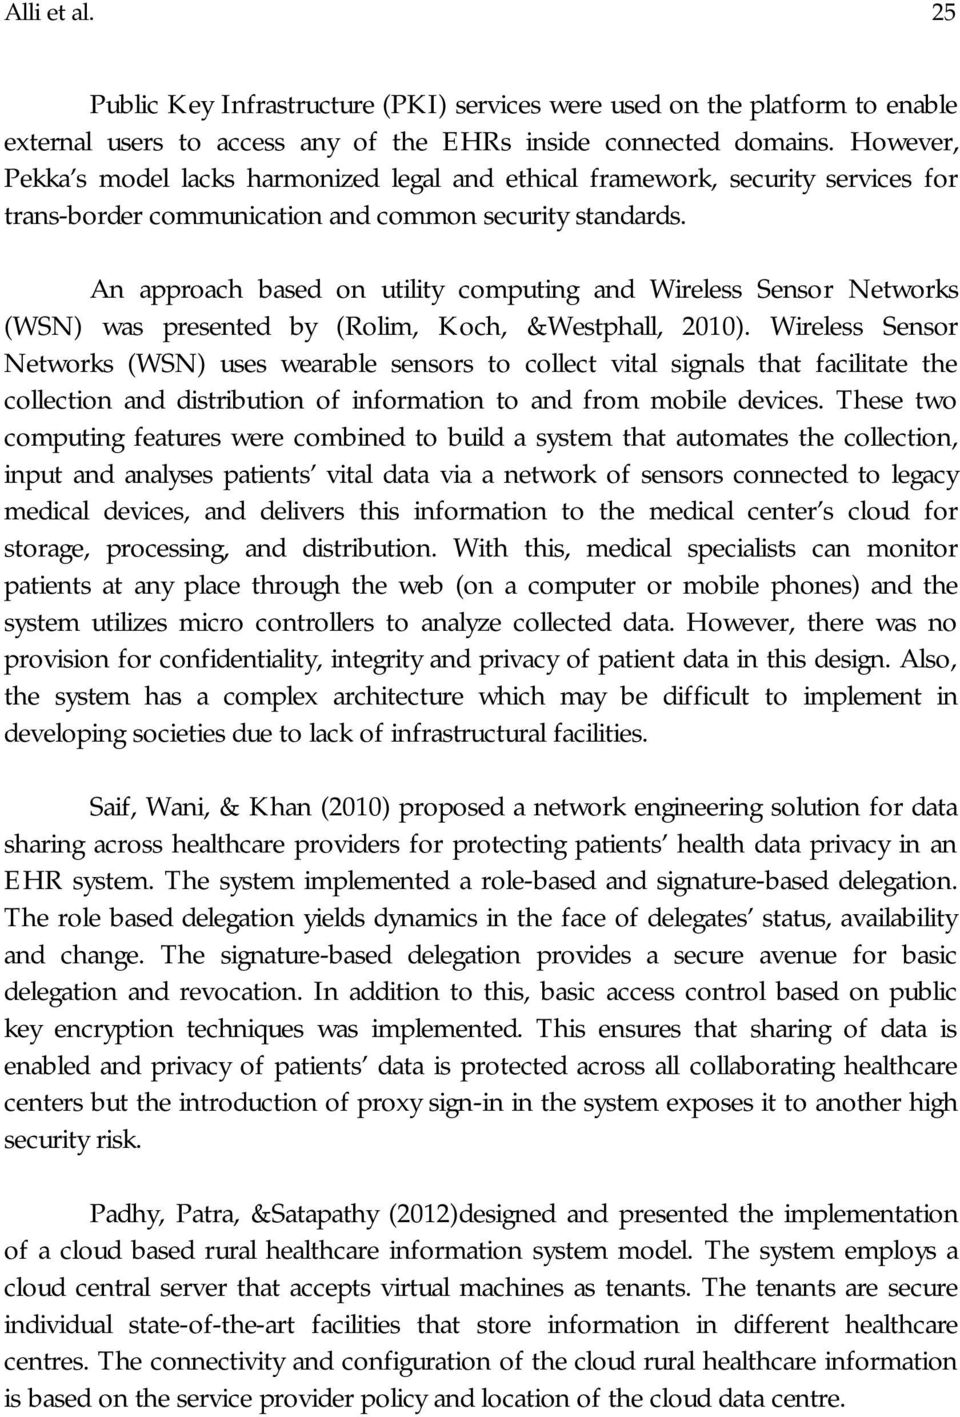 An approach based on utility computing and Wireless Sensor Networks (WSN) was presented by (Rolim, Koch, &Westphall, 2010).